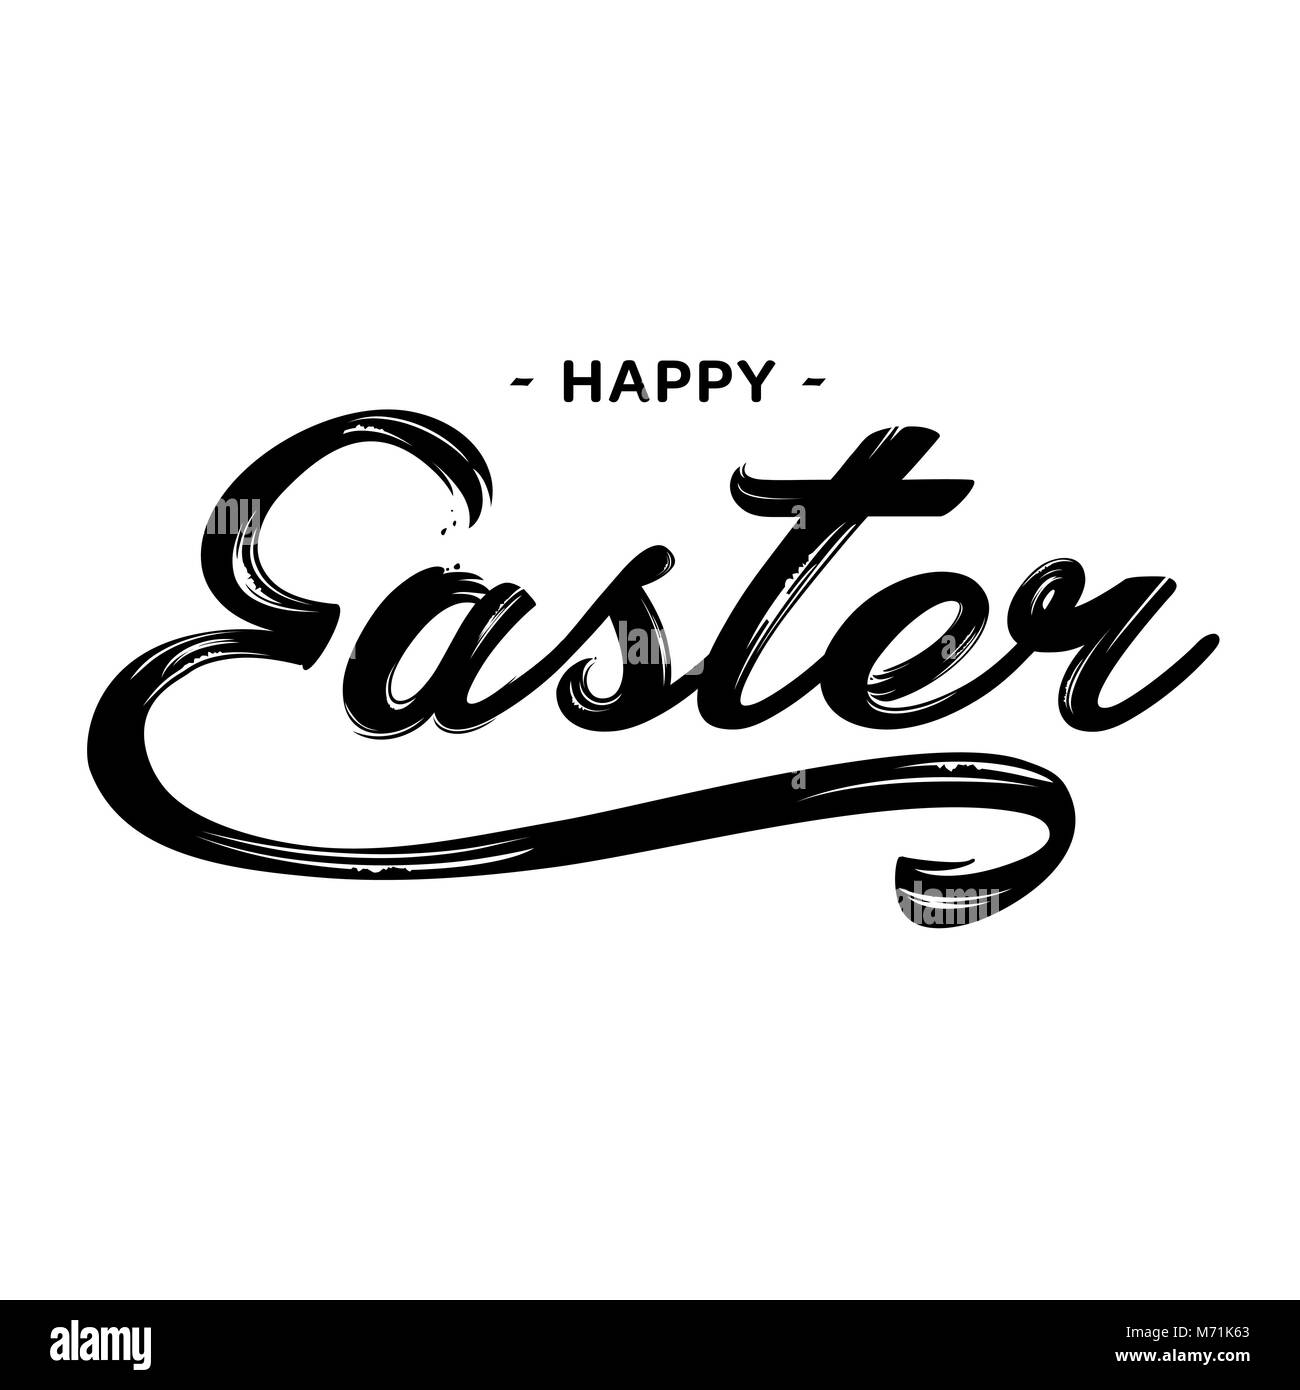 Happy Easter lettering greeting text vector illustration. Happy easter image. - Stock Image